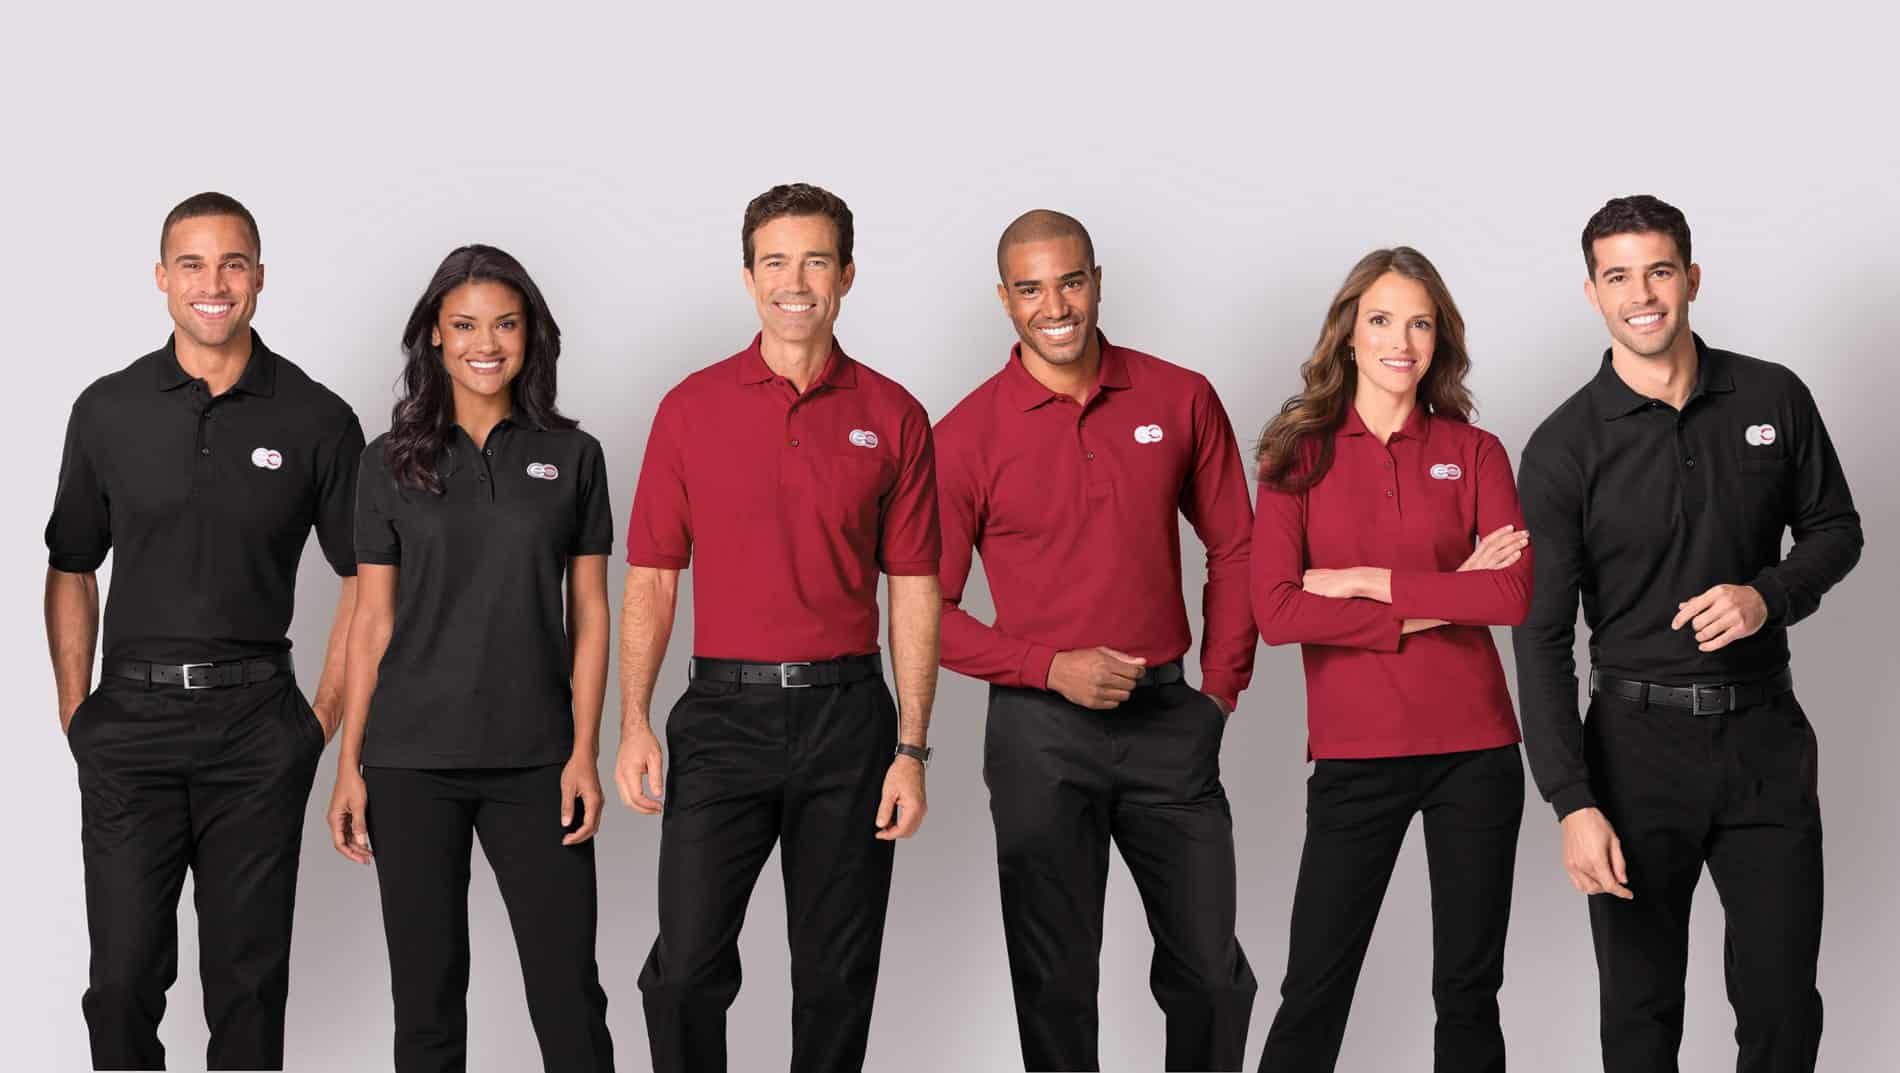 Custom Embroidered Polos by Printology